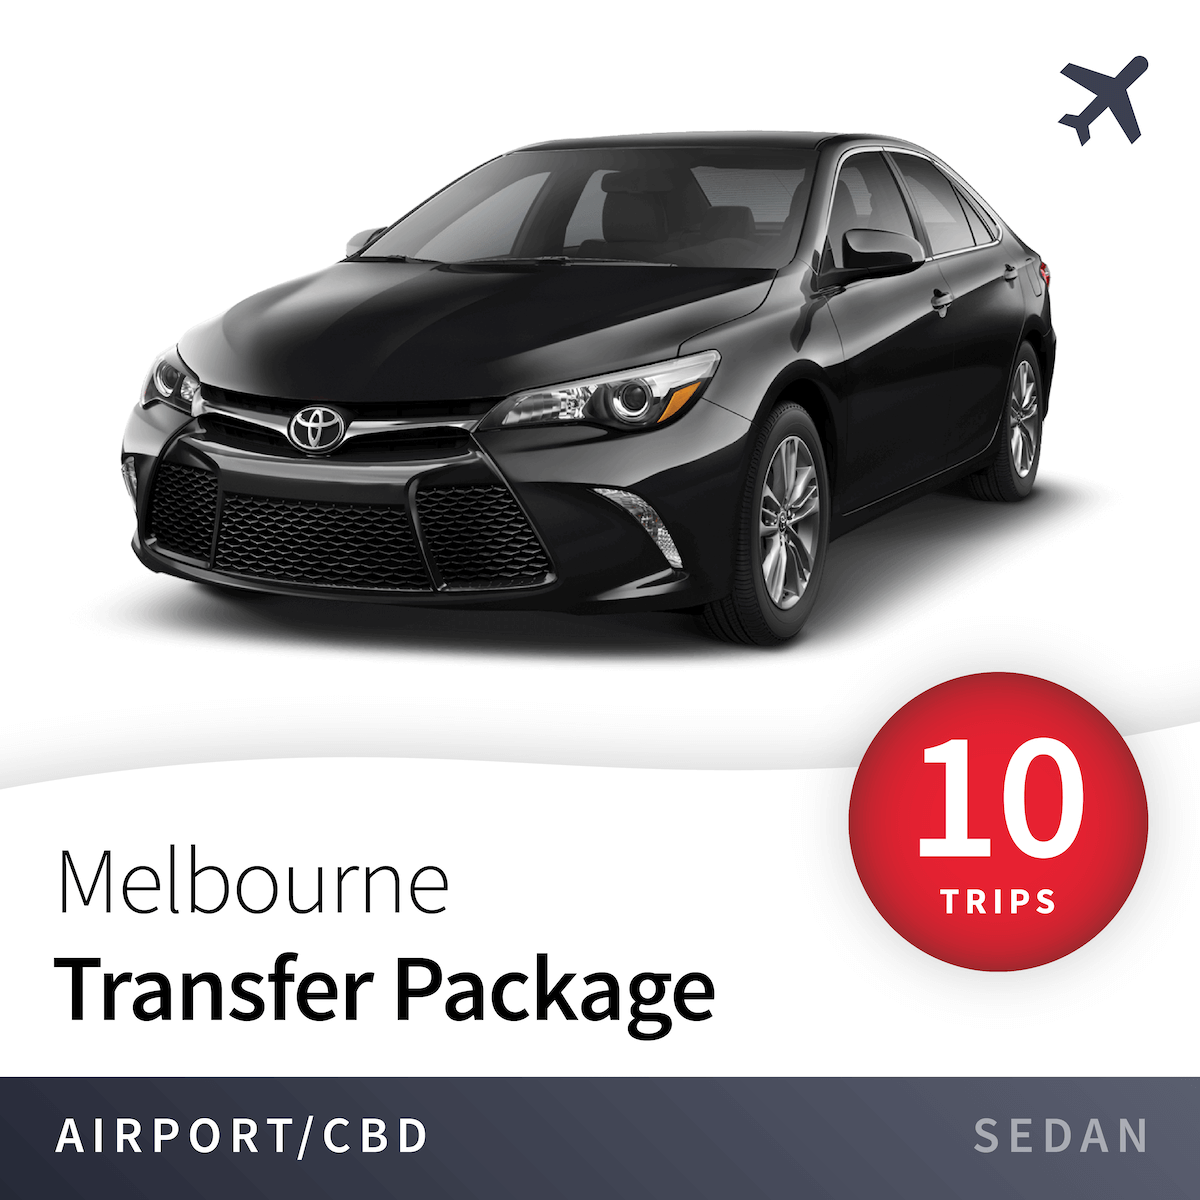 Melbourne Airport Transfer Package - Sedan (10 Trips) 5